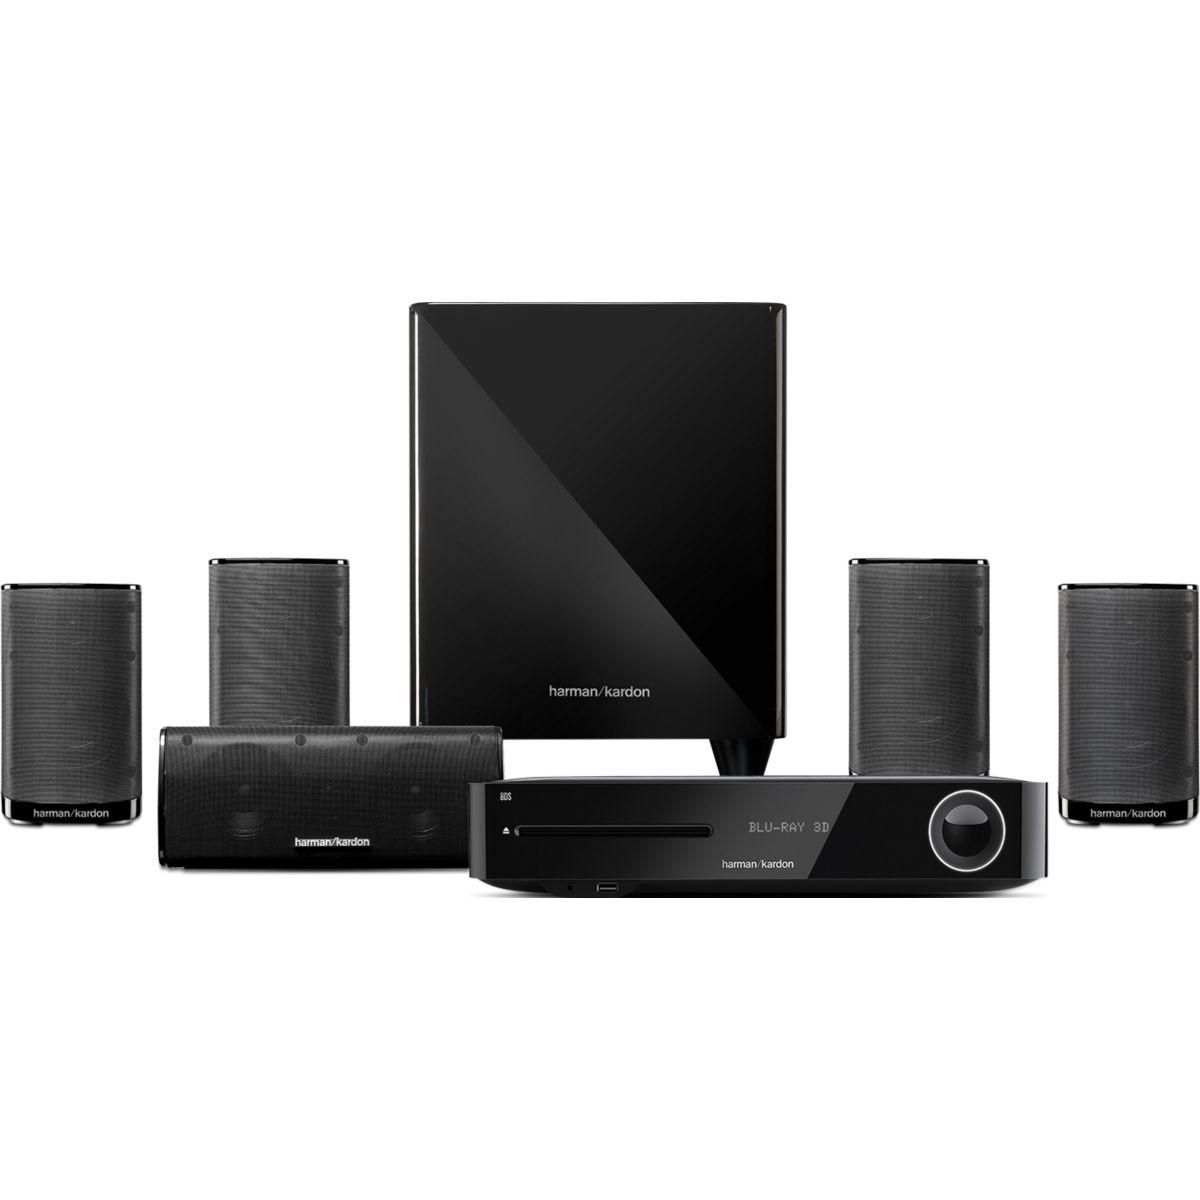 Yamaha dvxc bl cinema station home theater sound system black by condition reconditioned all in one channel also rh pinterest